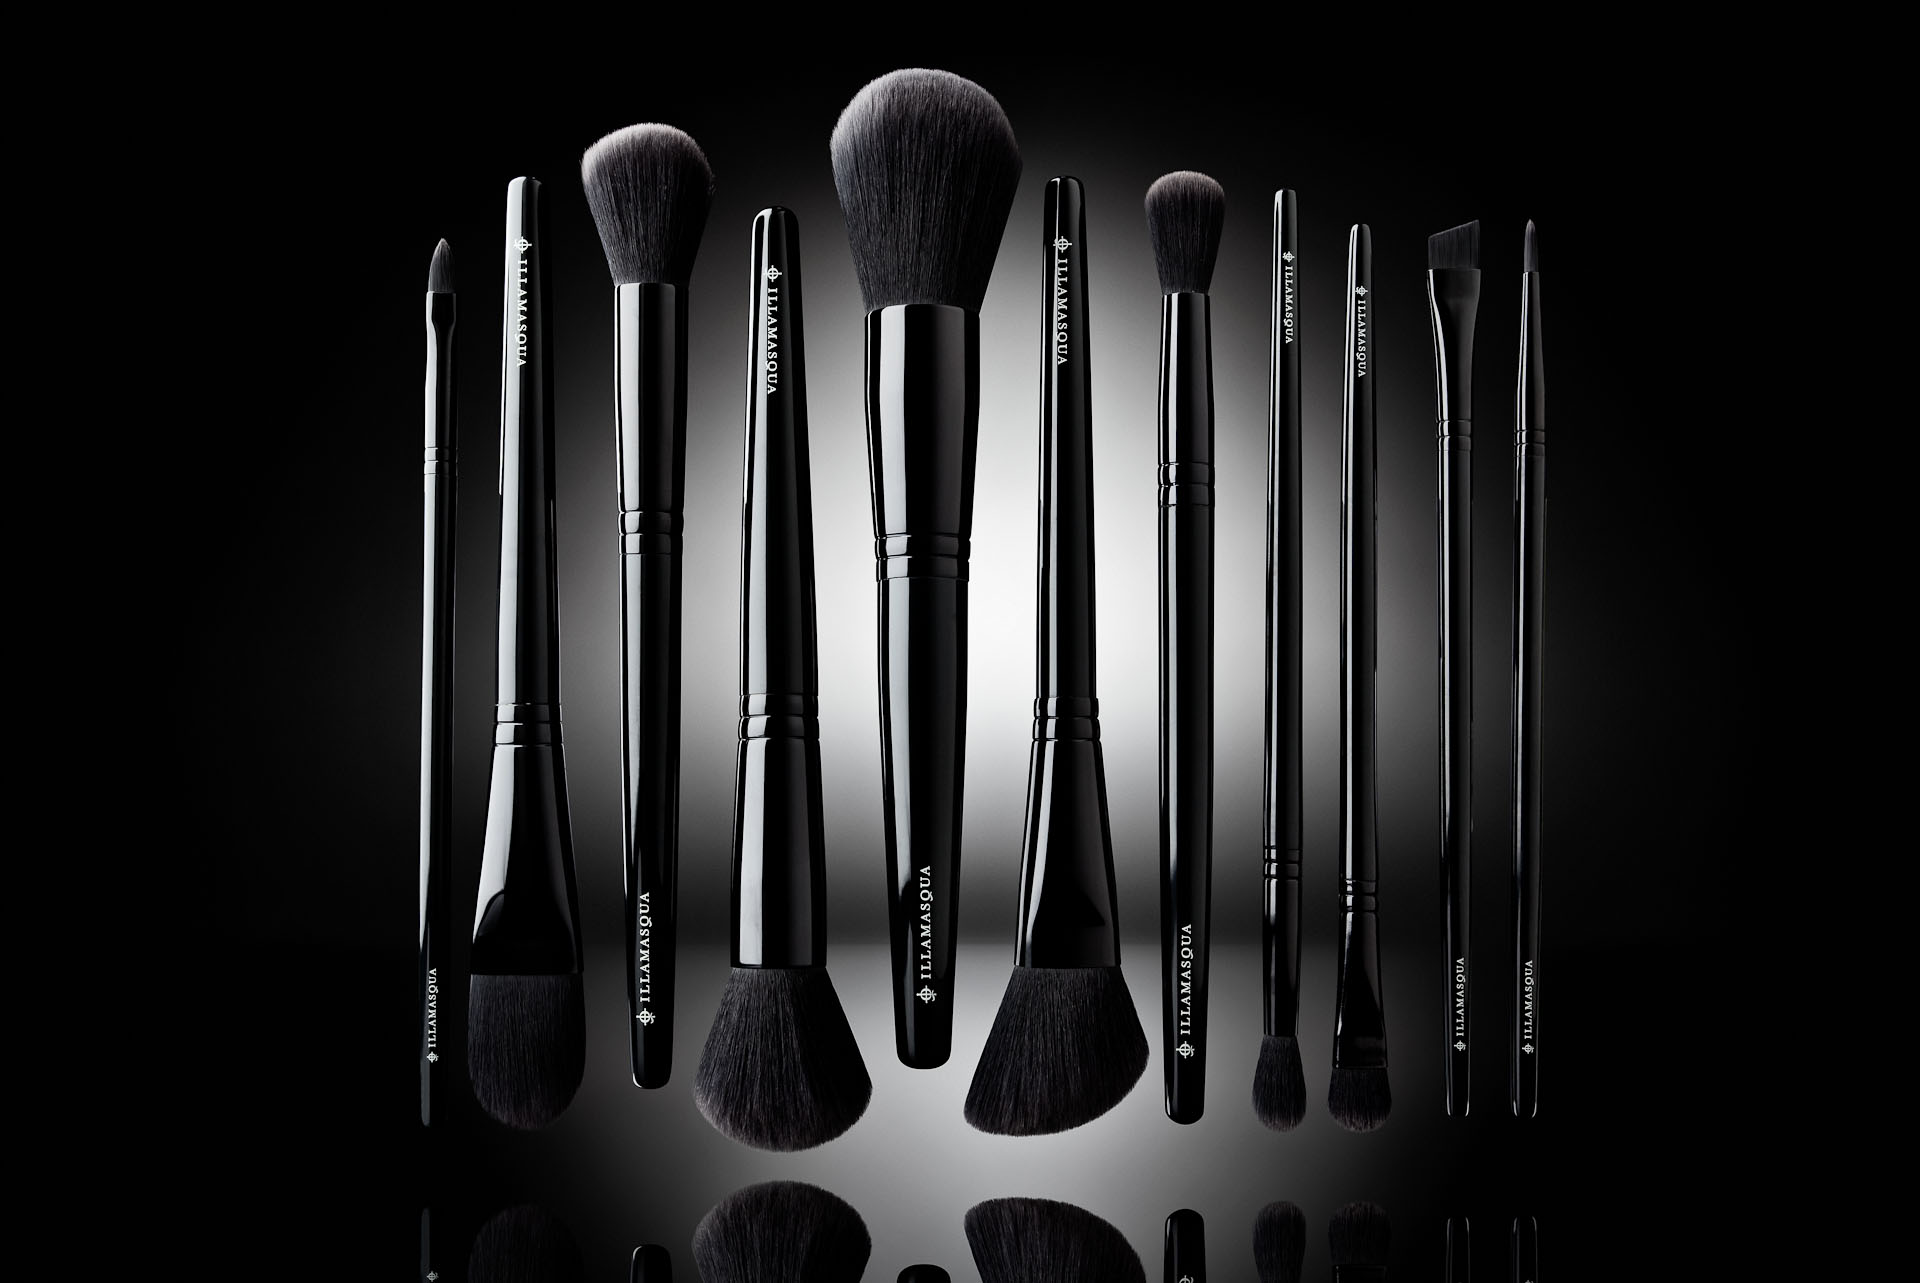 Illamasqua_Black-Brushes_RGB_V1.jpg